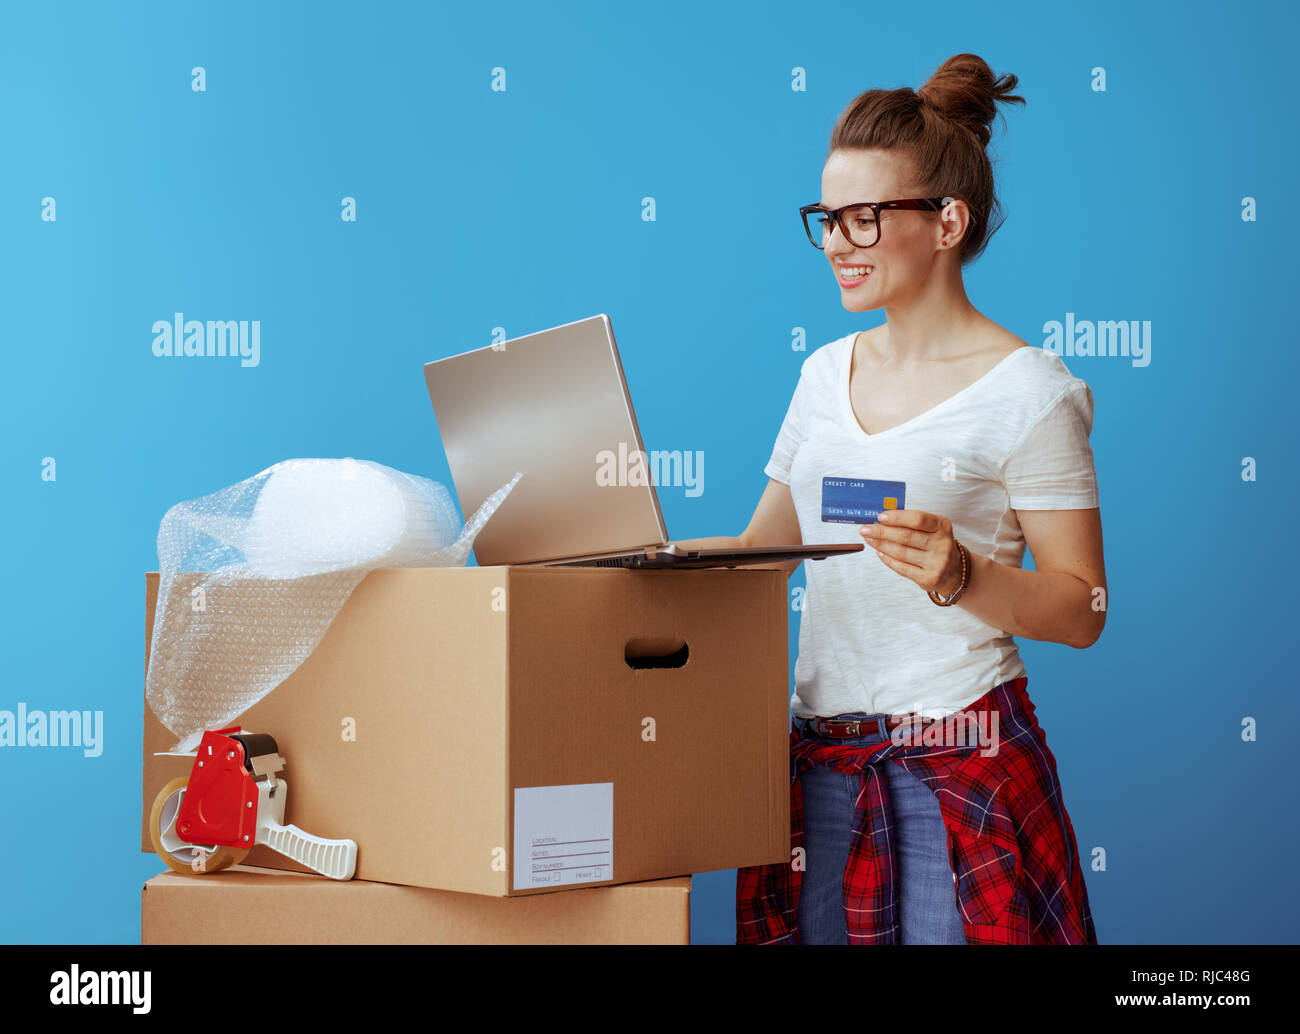 happy modern woman in white t-shirt near cardboard box with credit card using laptop isolated on blue - Stock Image